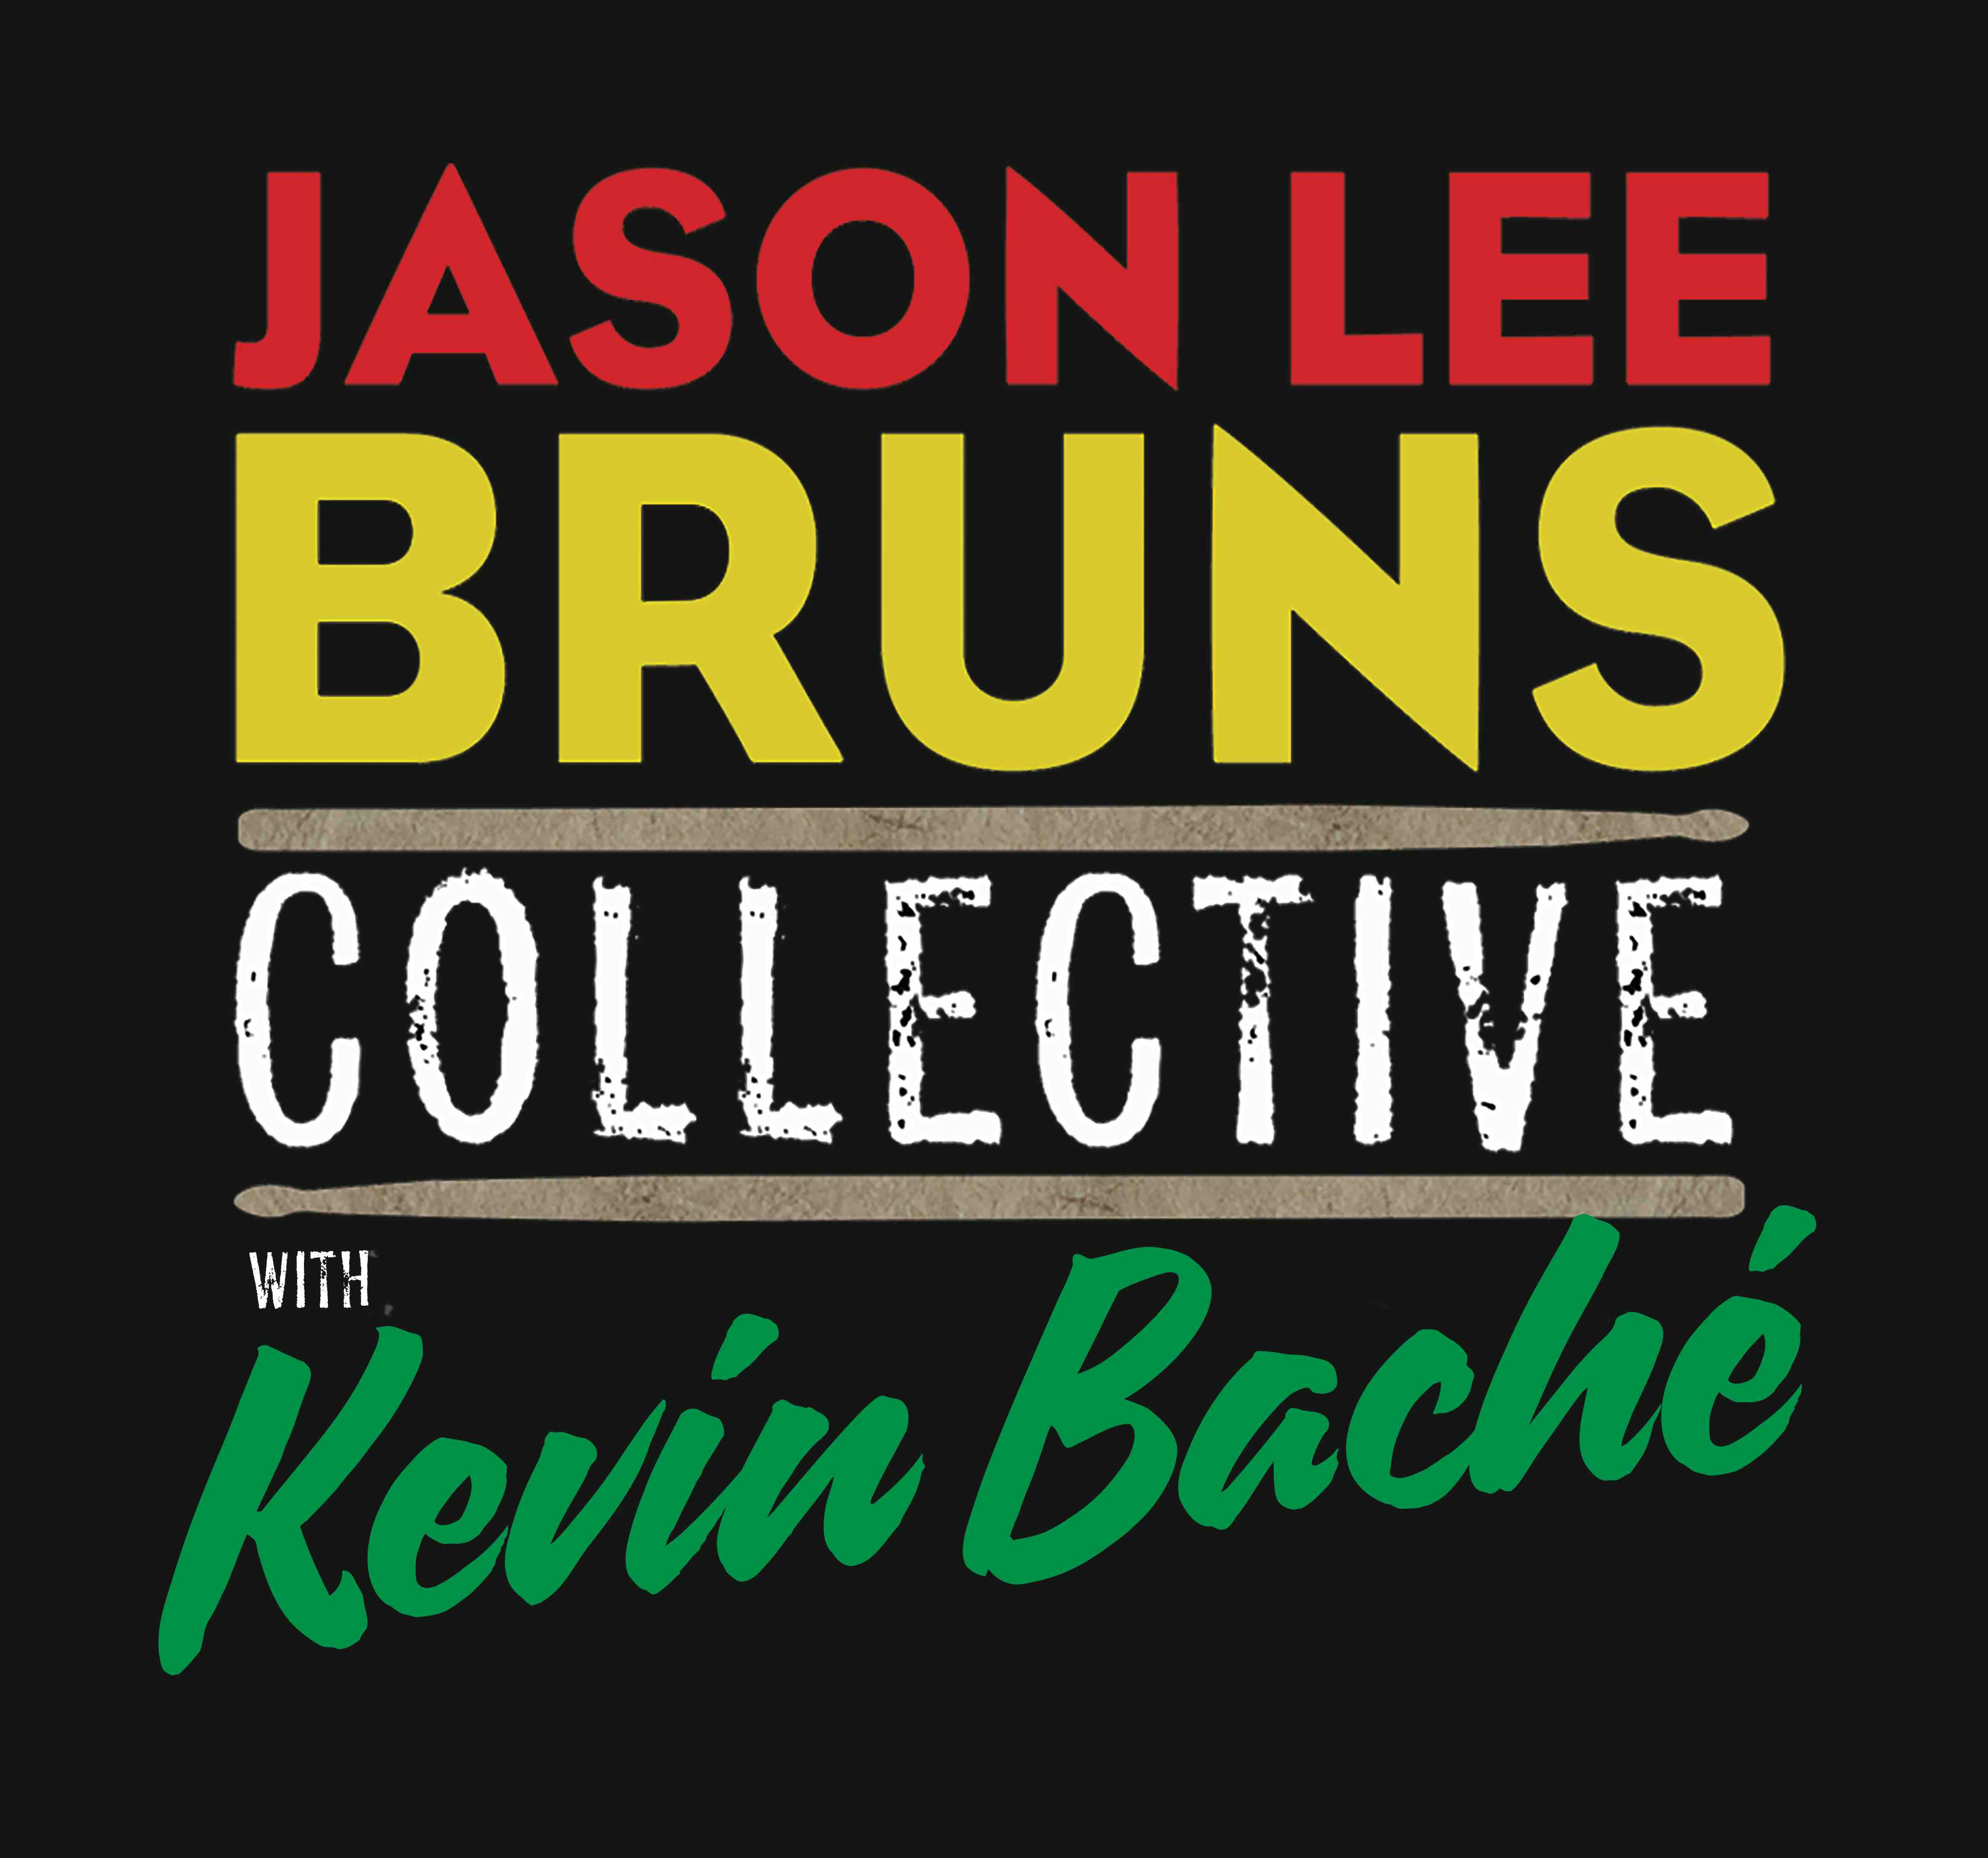 Jason Lee Bruns Collective ft. Kevin Baché 2019 JAPAN Tour